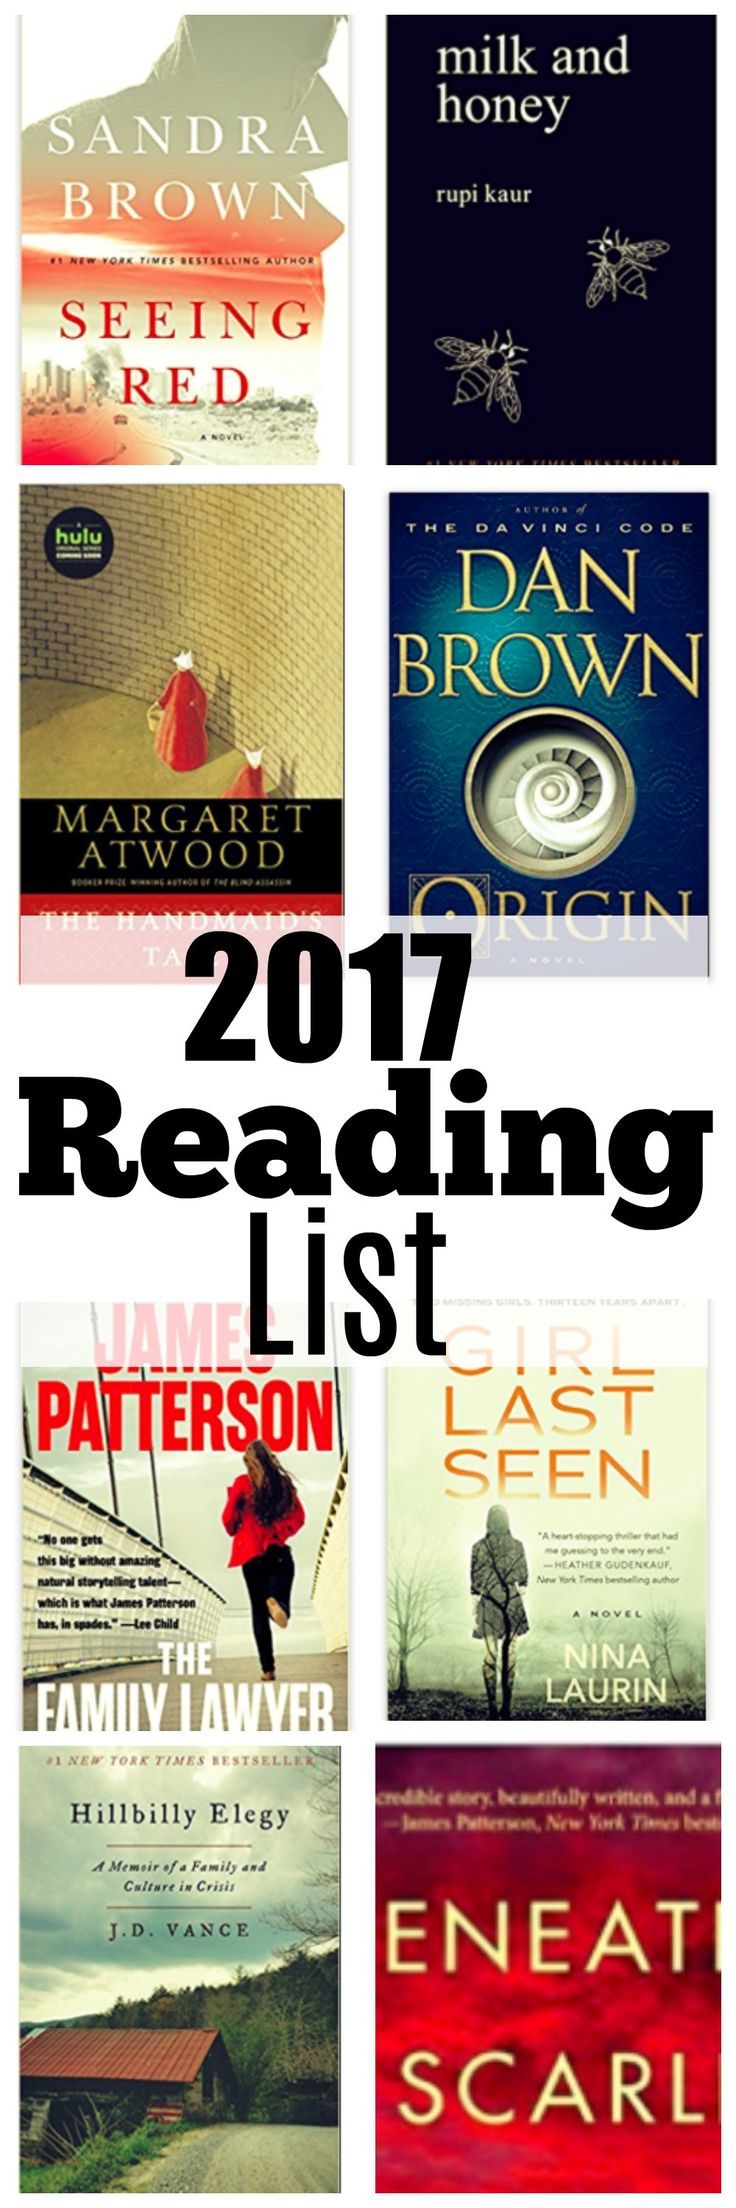 Atlanta mom blogger shares her 2017 reading list with some of the top fiction books she has read so far. Have you read any of them?!